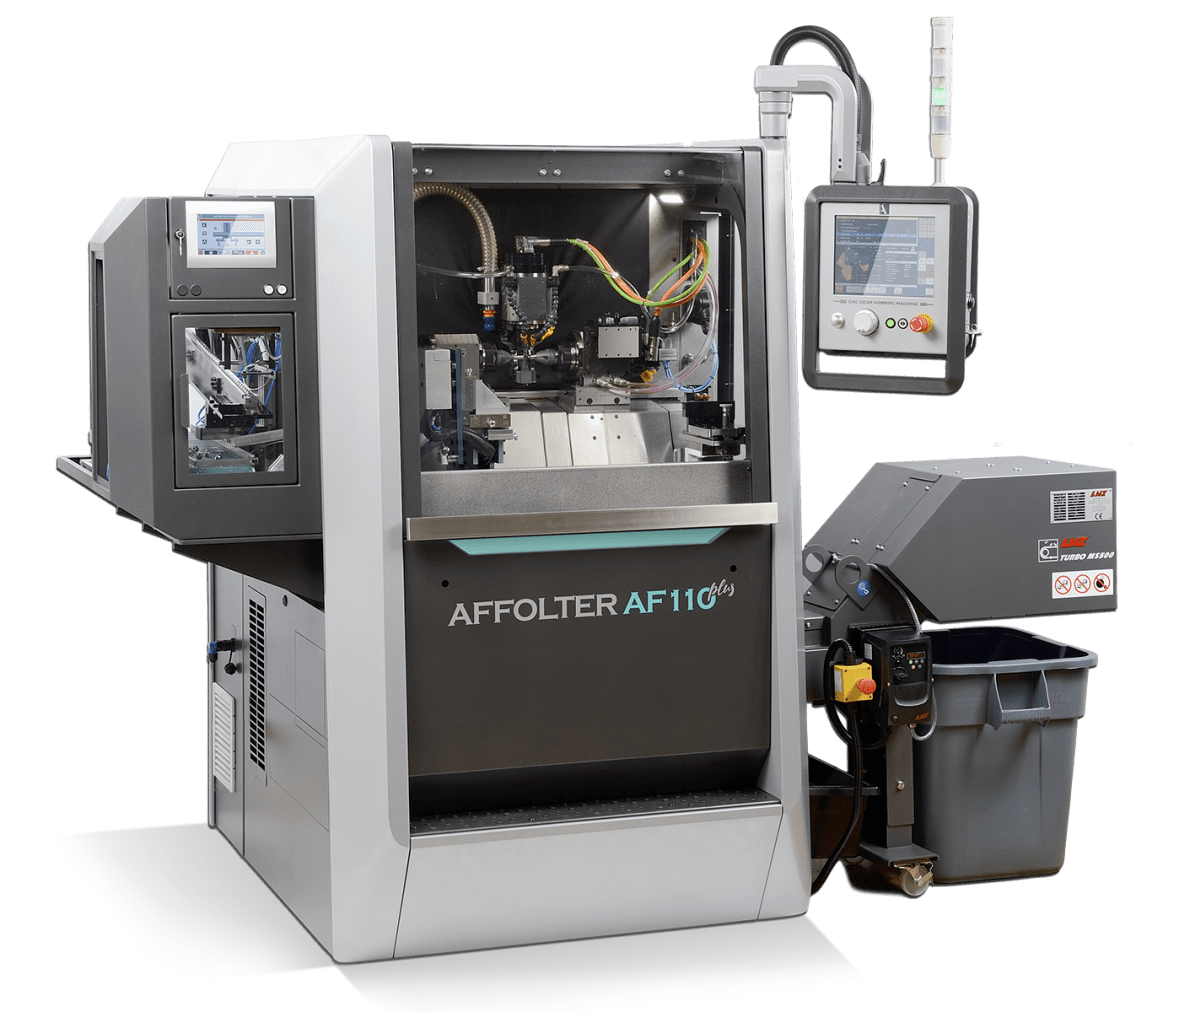 affolter-af110-plus-cnc-machine-a-tailler-engrenage-taillage-xl